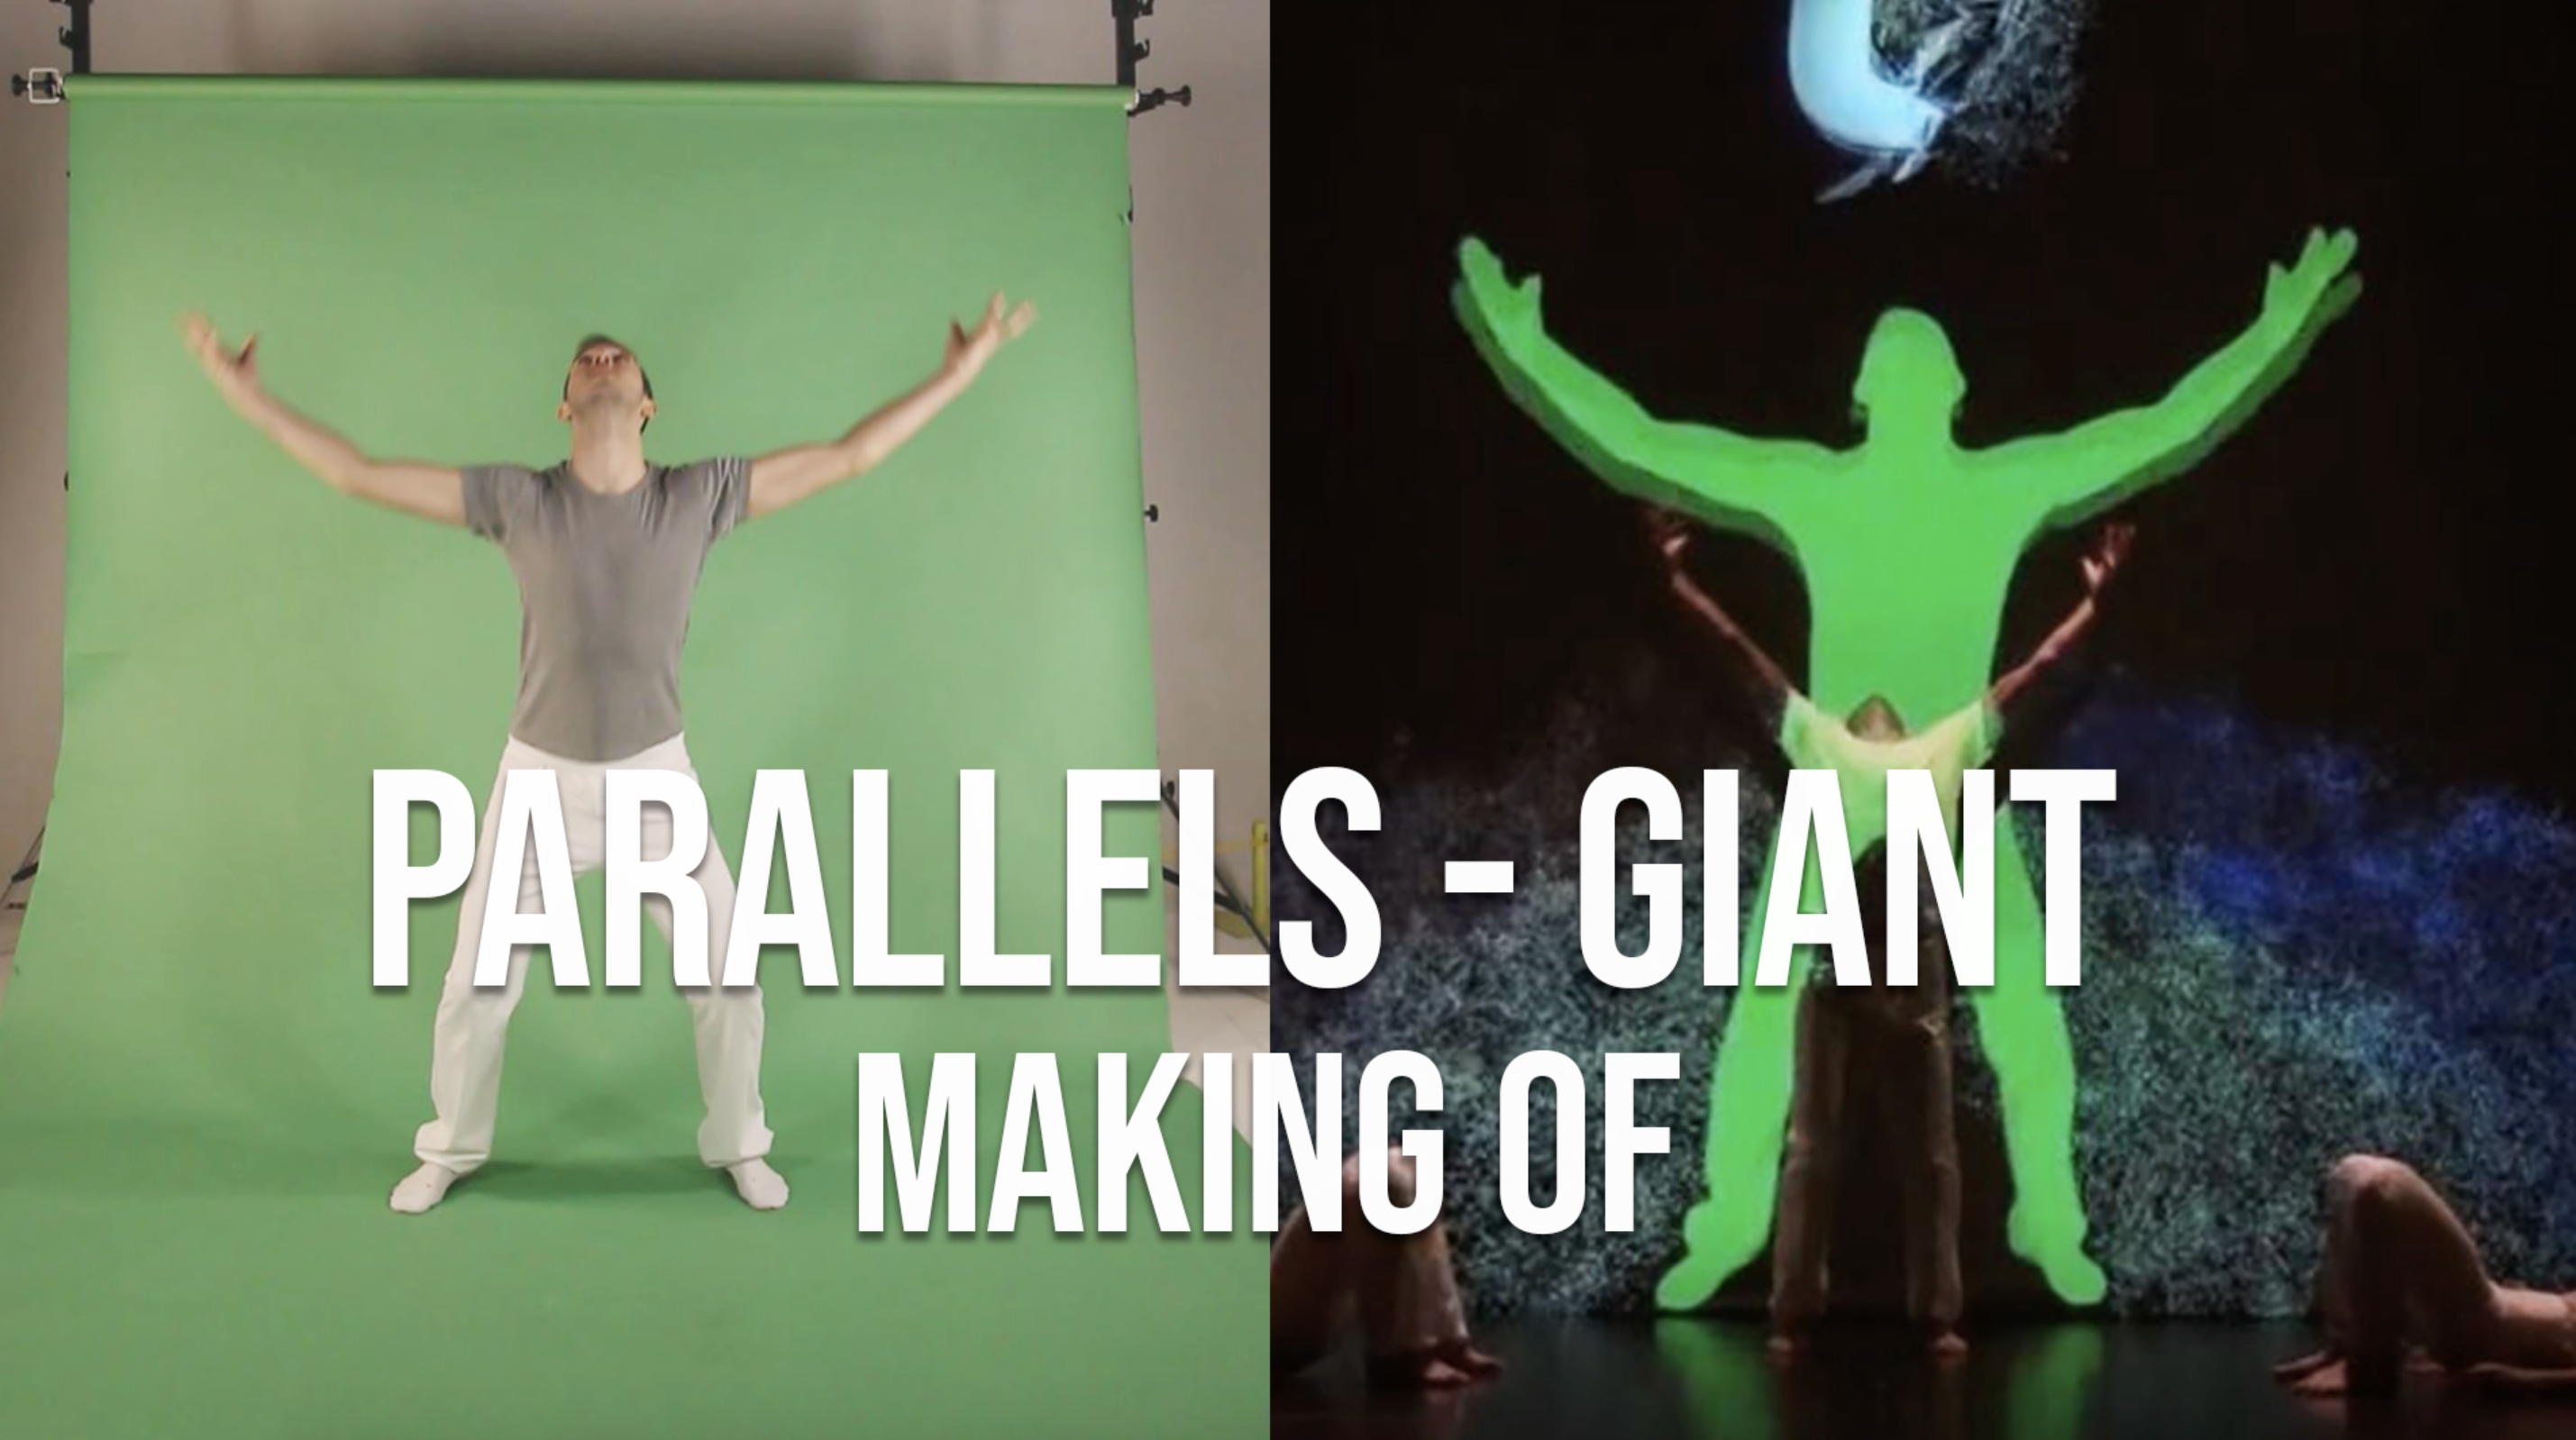 PARALLELS – Giant Making Of